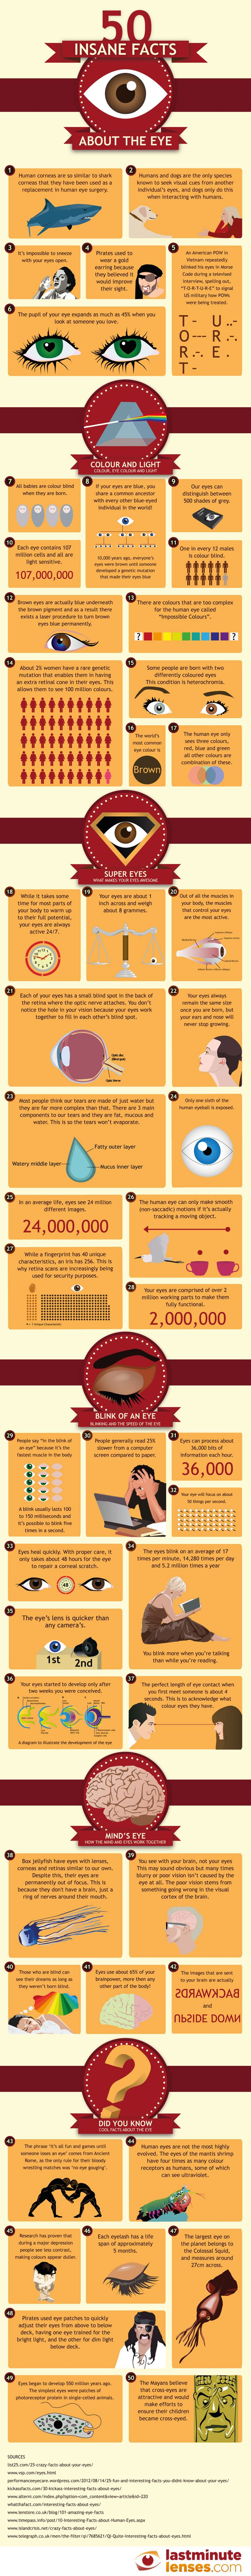 50 insane facts about the eye -From how much your eye weighs to what makes is in a tear drop, this insightful Infographic has you covered with everything you ever wanted to know about the human eye. -Posted Mar 05, 2014 THIS IS AMAZING!! I LEARNED SO MANY THINGS ABOUT EYES!